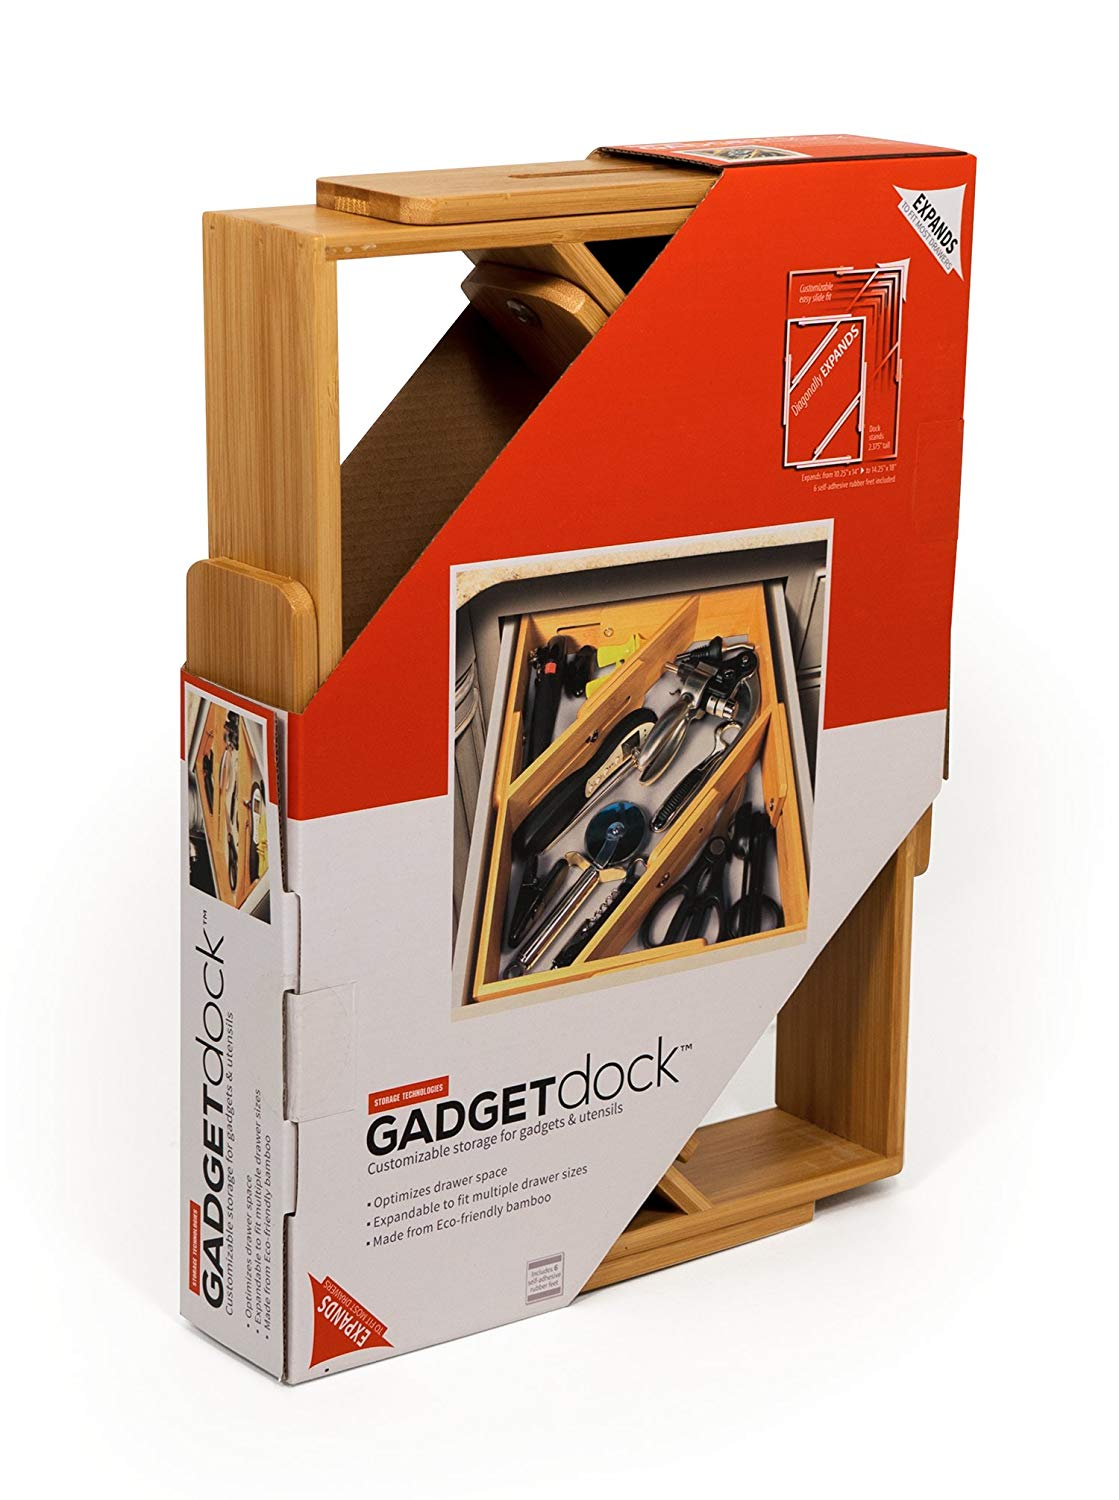 "GADGETdock (14"" x 10"" x 2.375"") stores all your bamboo gadget's, utensil's, and gizmo's. This bamboo organizer scales to fit your drawer. Larger or smaller footprints don't matter it fits your needs."